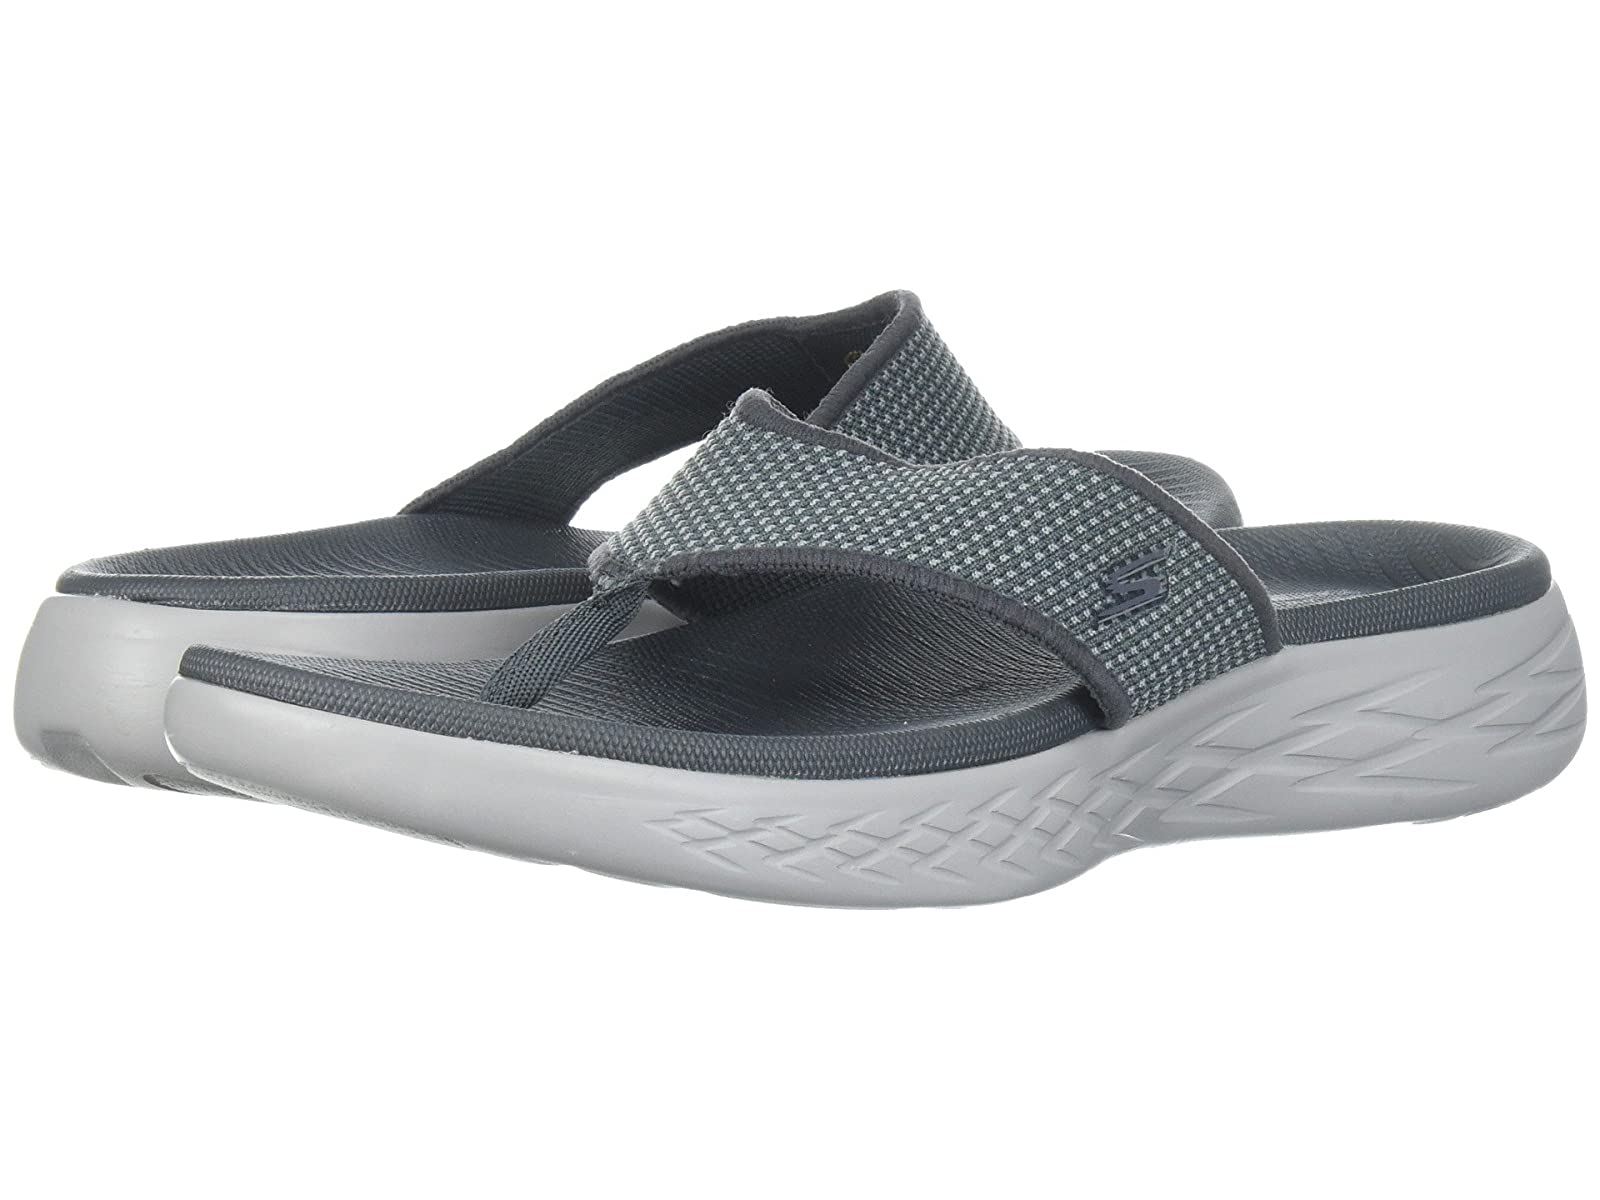 SKECHERS Performance On-The-Go 600 - 55350Atmospheric grades have affordable shoes